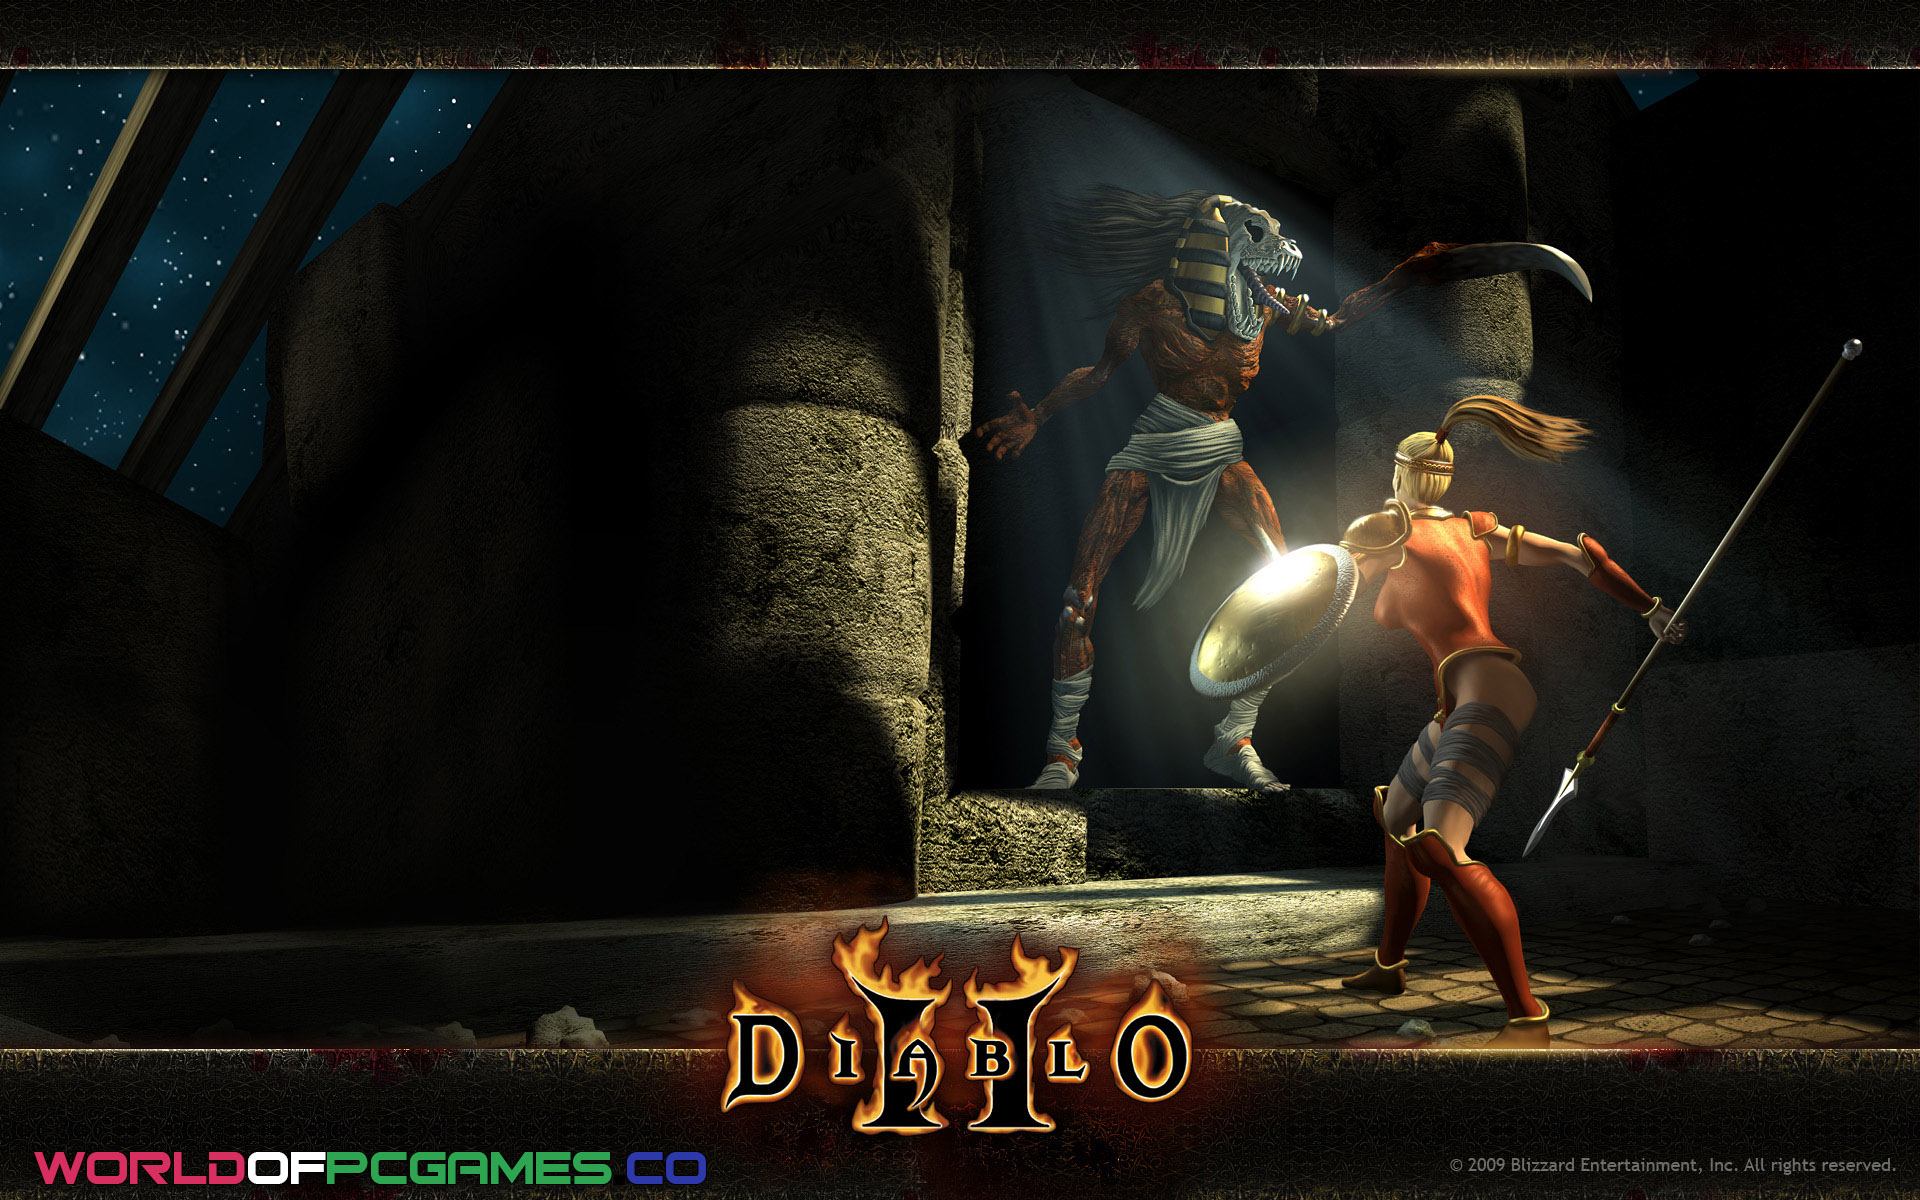 Diablo II Free Download PC Game By Worldofpcgames.co